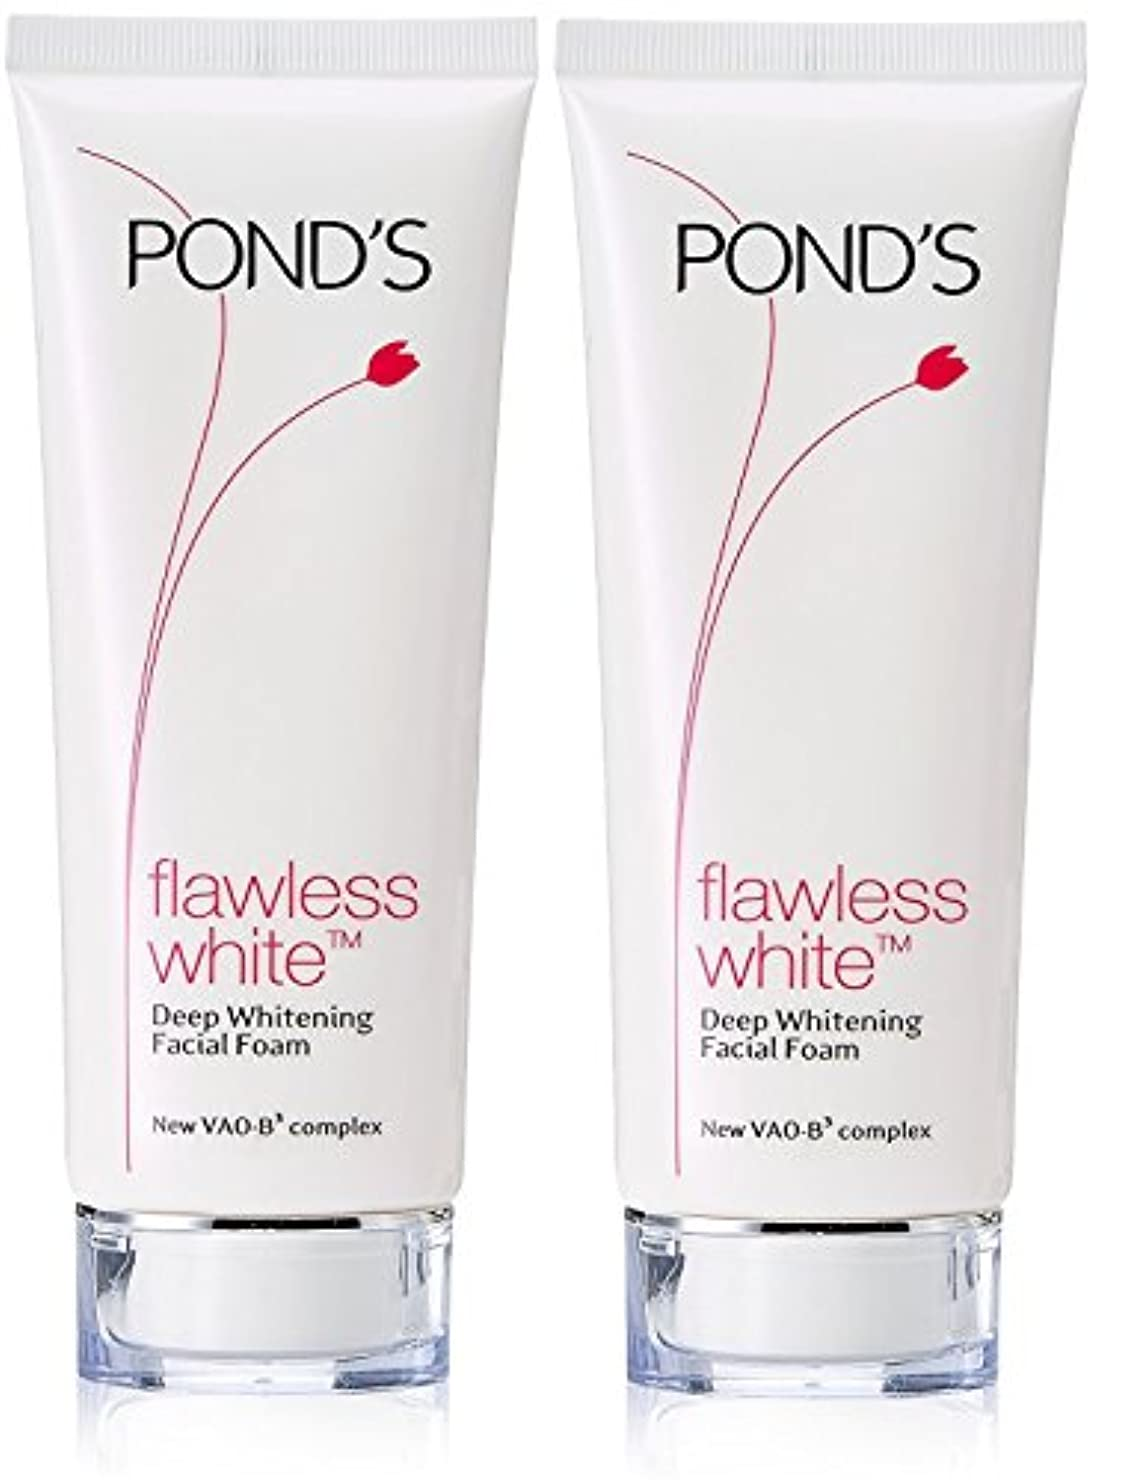 漏れ収穫スパイPond's Flawless White Deep Whitening Facial Foam, 100g (Pack of 2)